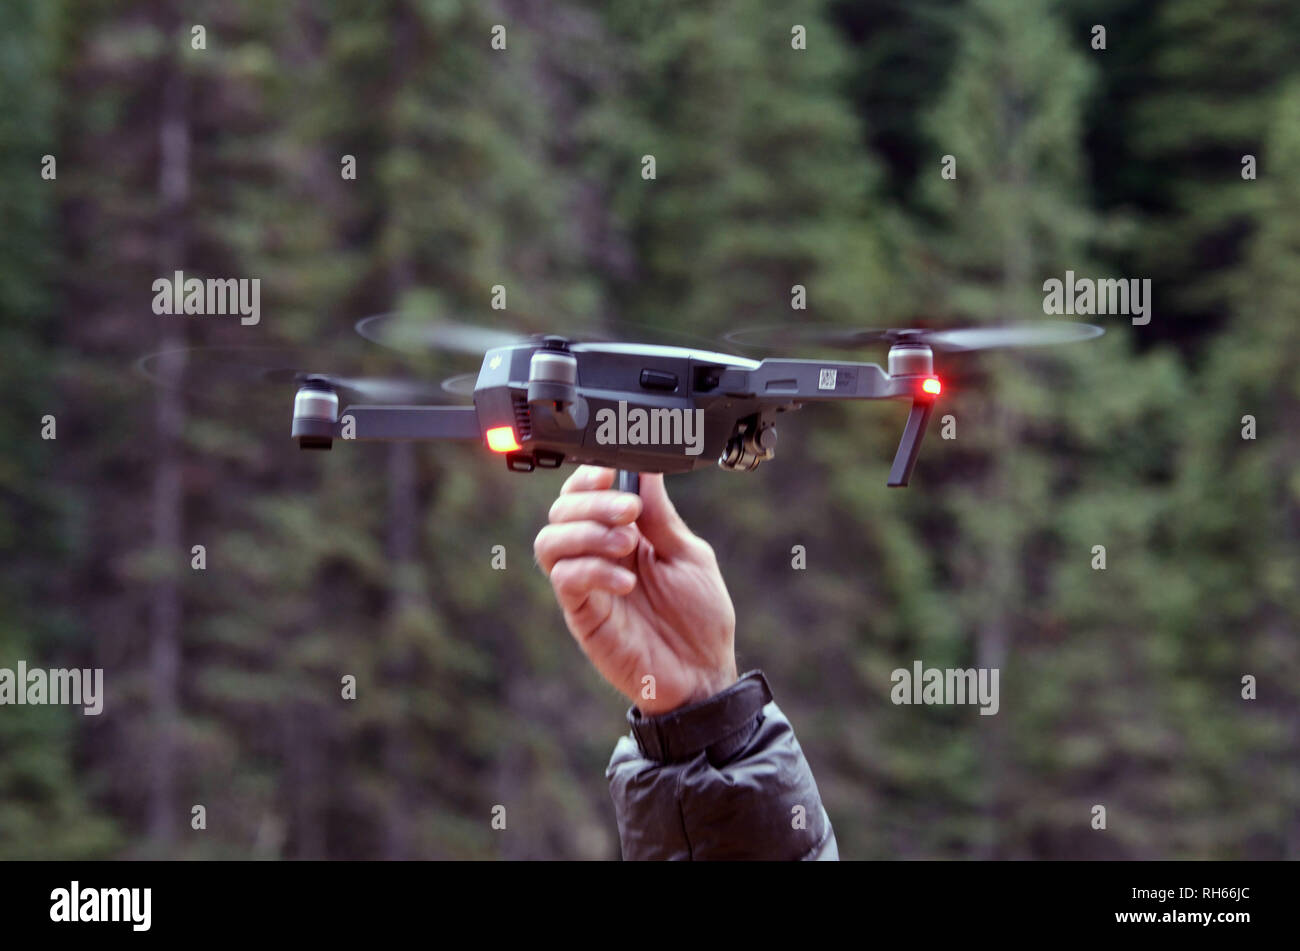 Filmmaker Scott Rulander retrieves a DJI Mavic Pro drone after a videography session in the Purcell Mountains of northwest Montana. - Stock Image